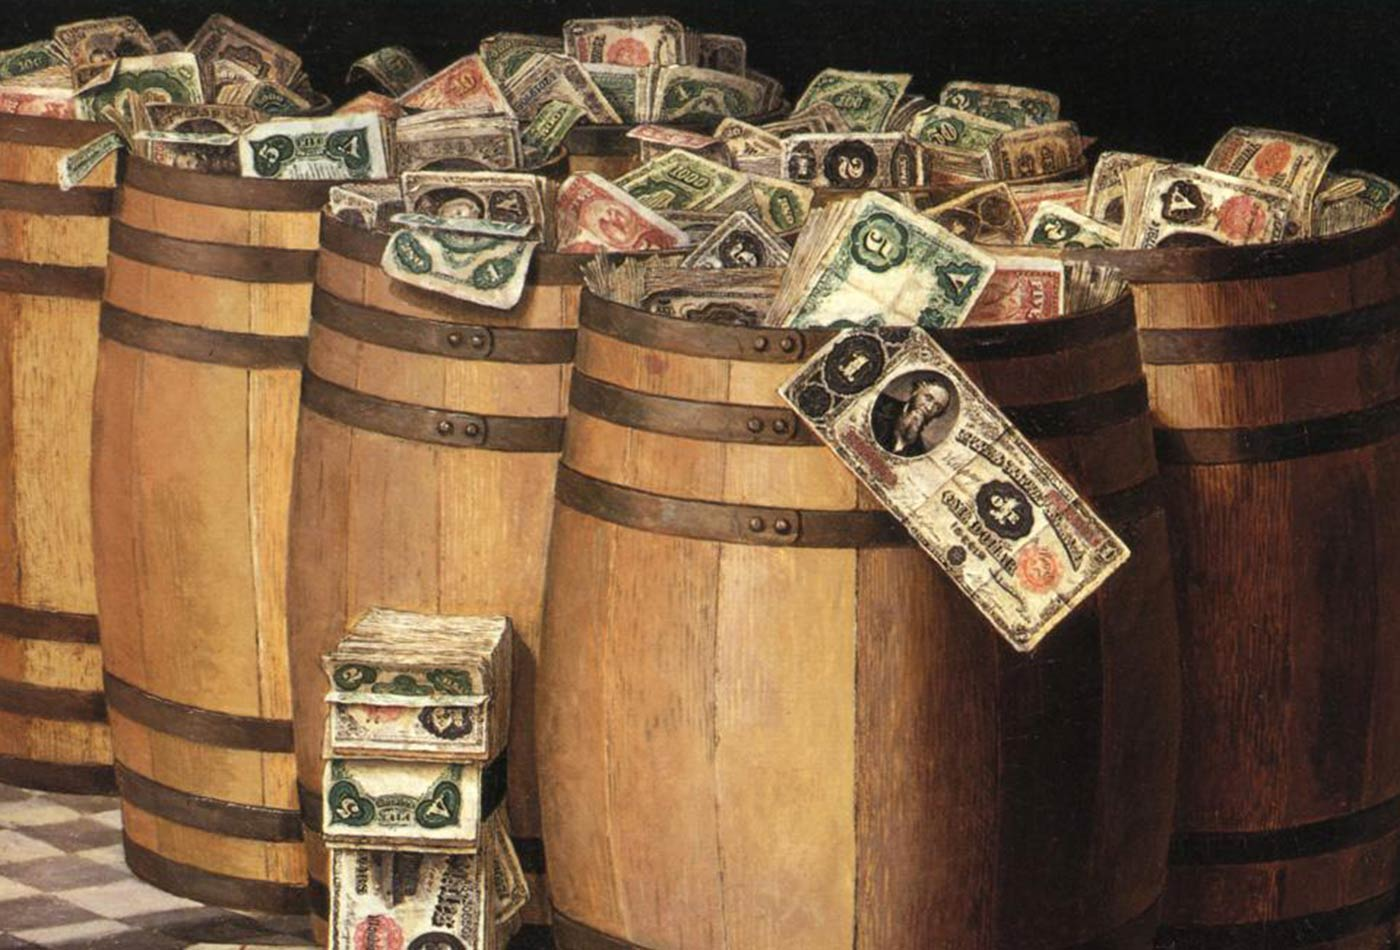 Barrels of Money, oil on canvas painting by Victor Dubreuil, c. 1897